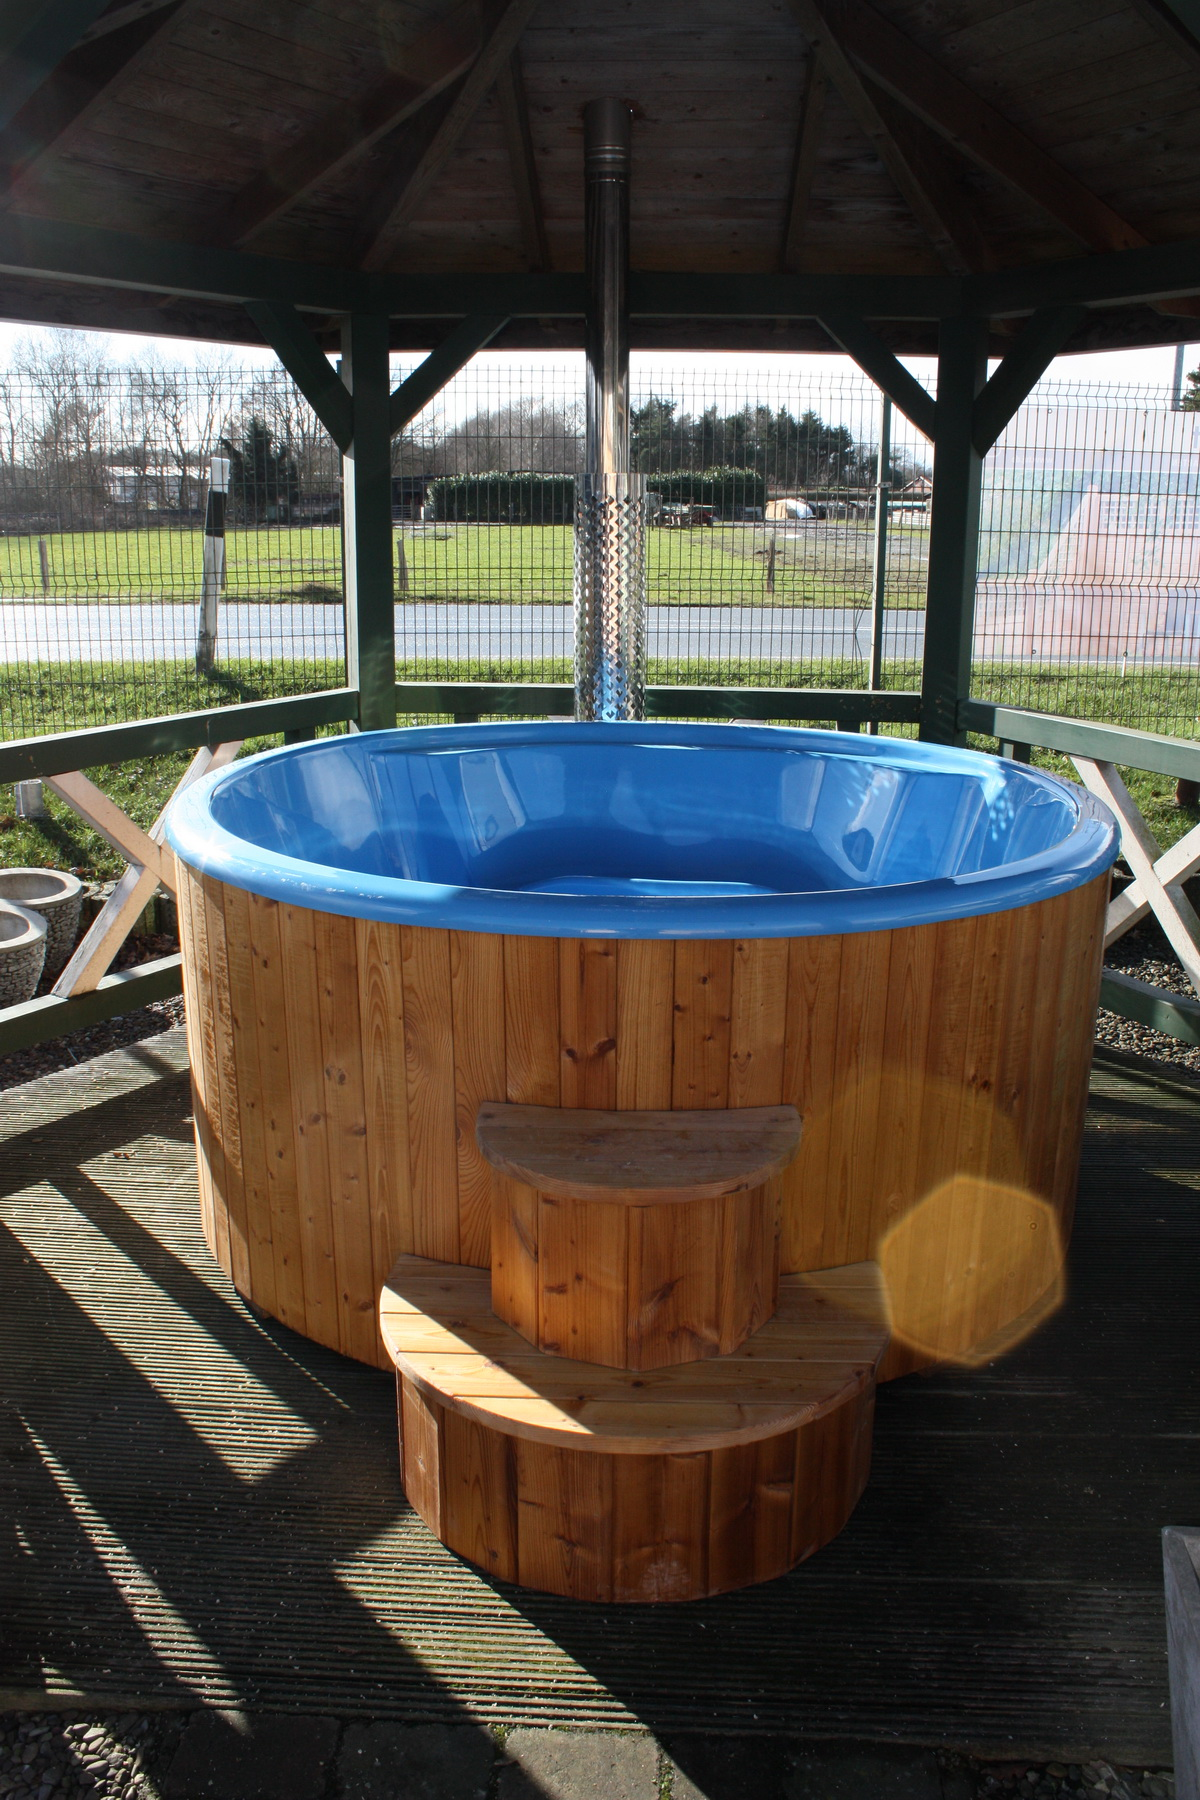 hot tub badebottich badetonne badefass badezuber 200cm integrier holzofen delux ebay. Black Bedroom Furniture Sets. Home Design Ideas